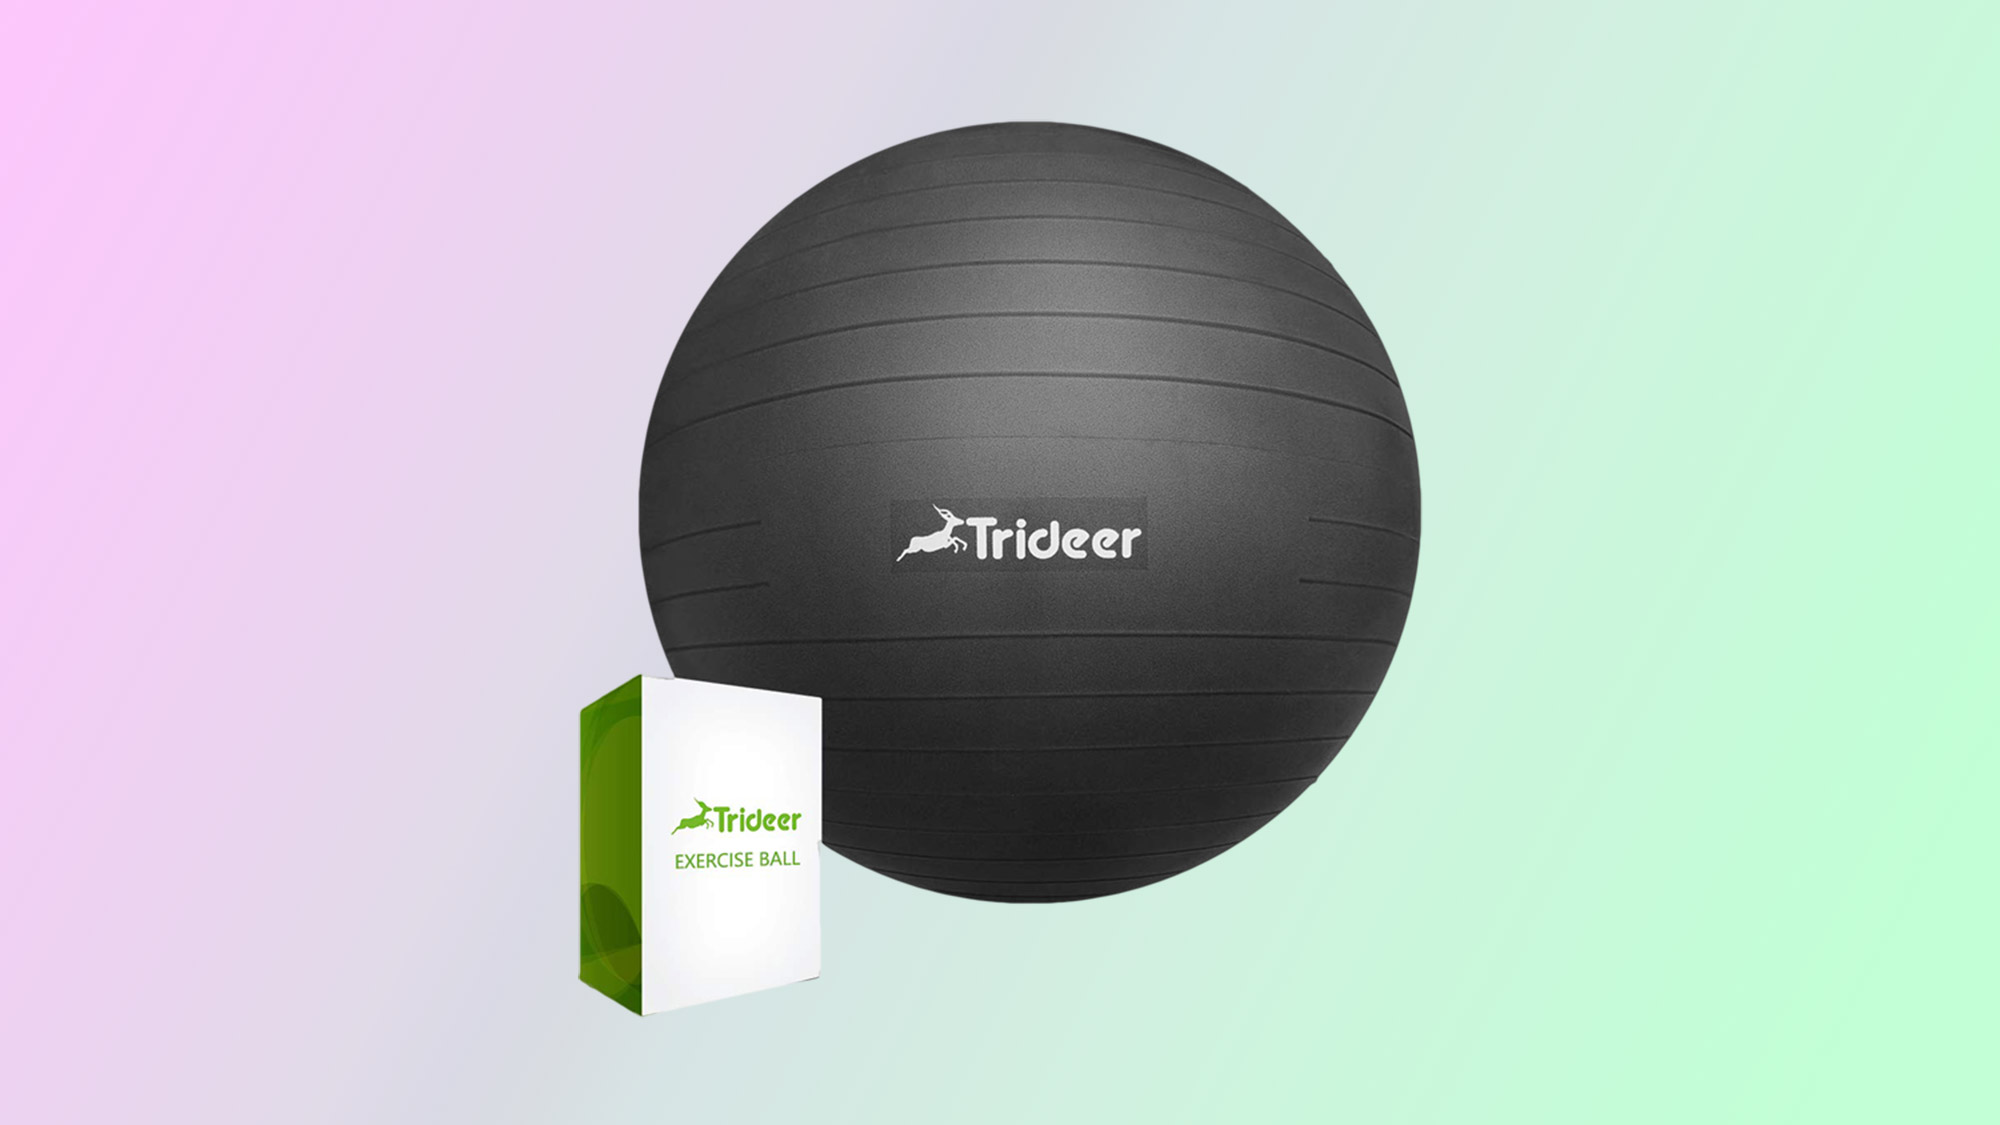 Best home gym equipment: Trideer Exercise Ball